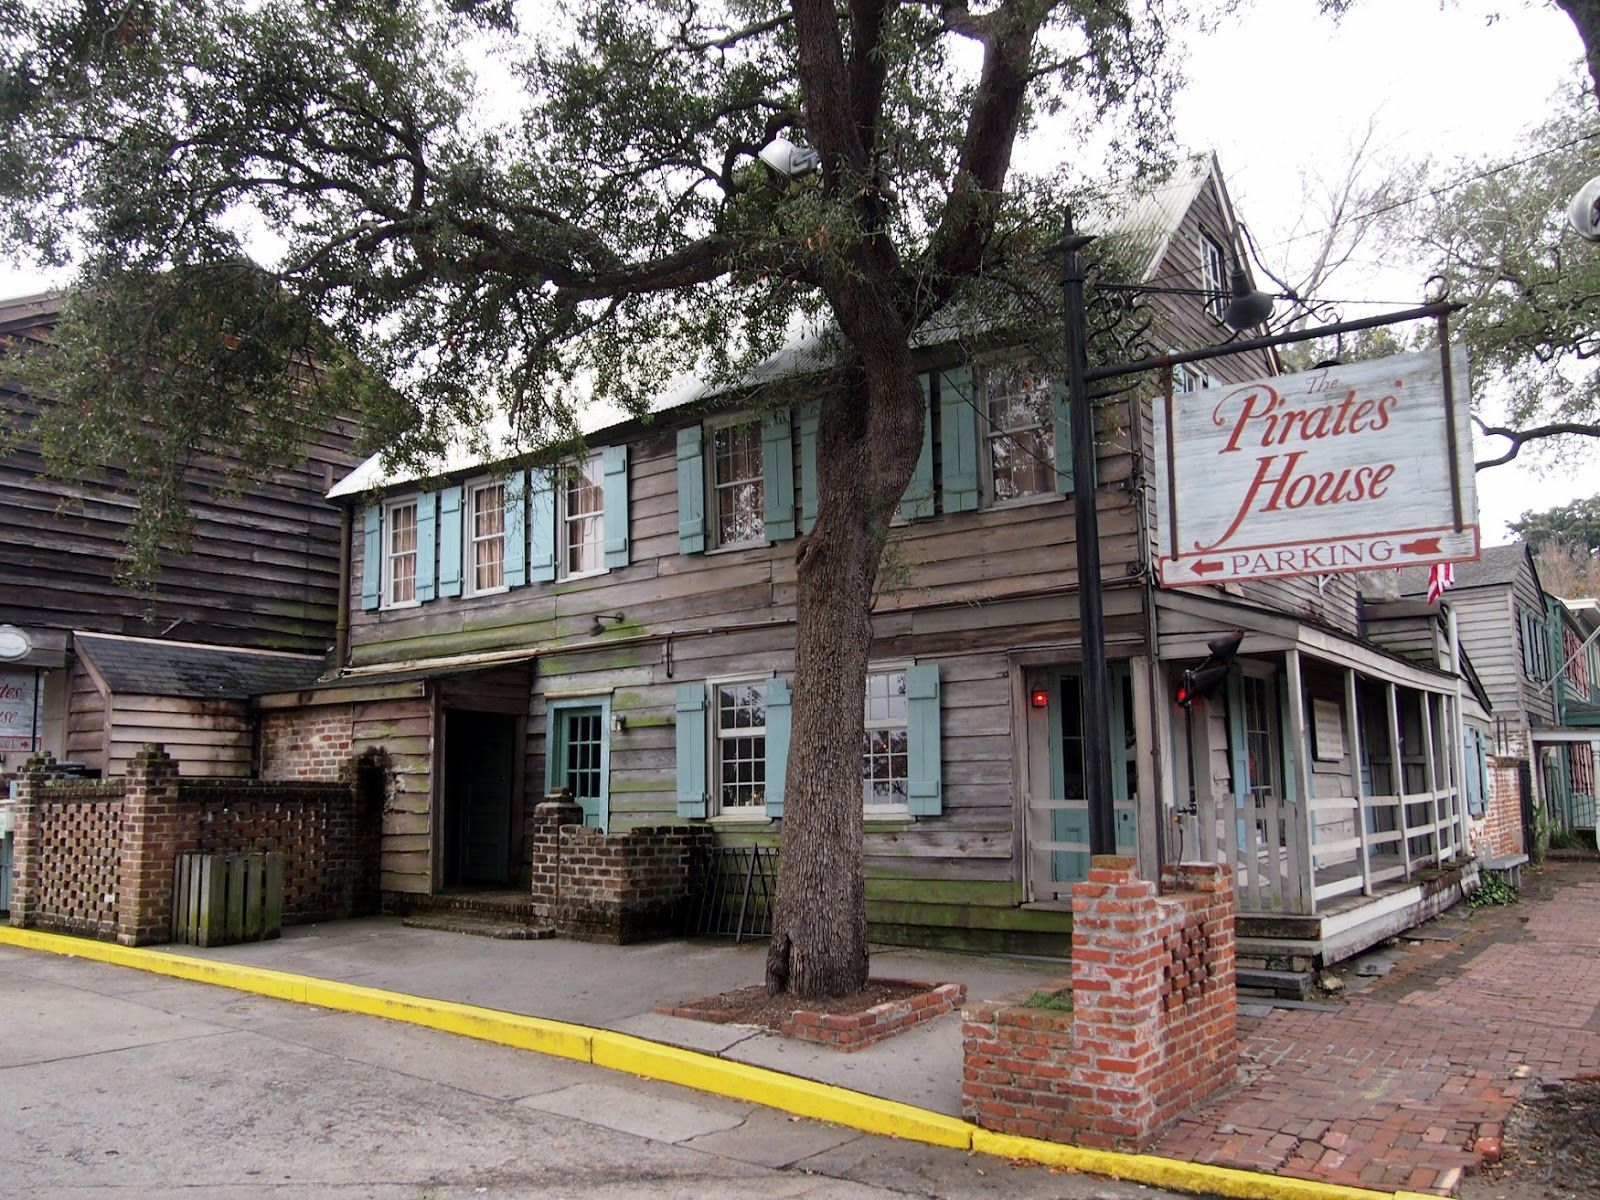 The Pirates House Restaurant 20 East Broad St Savannah Ga 31401